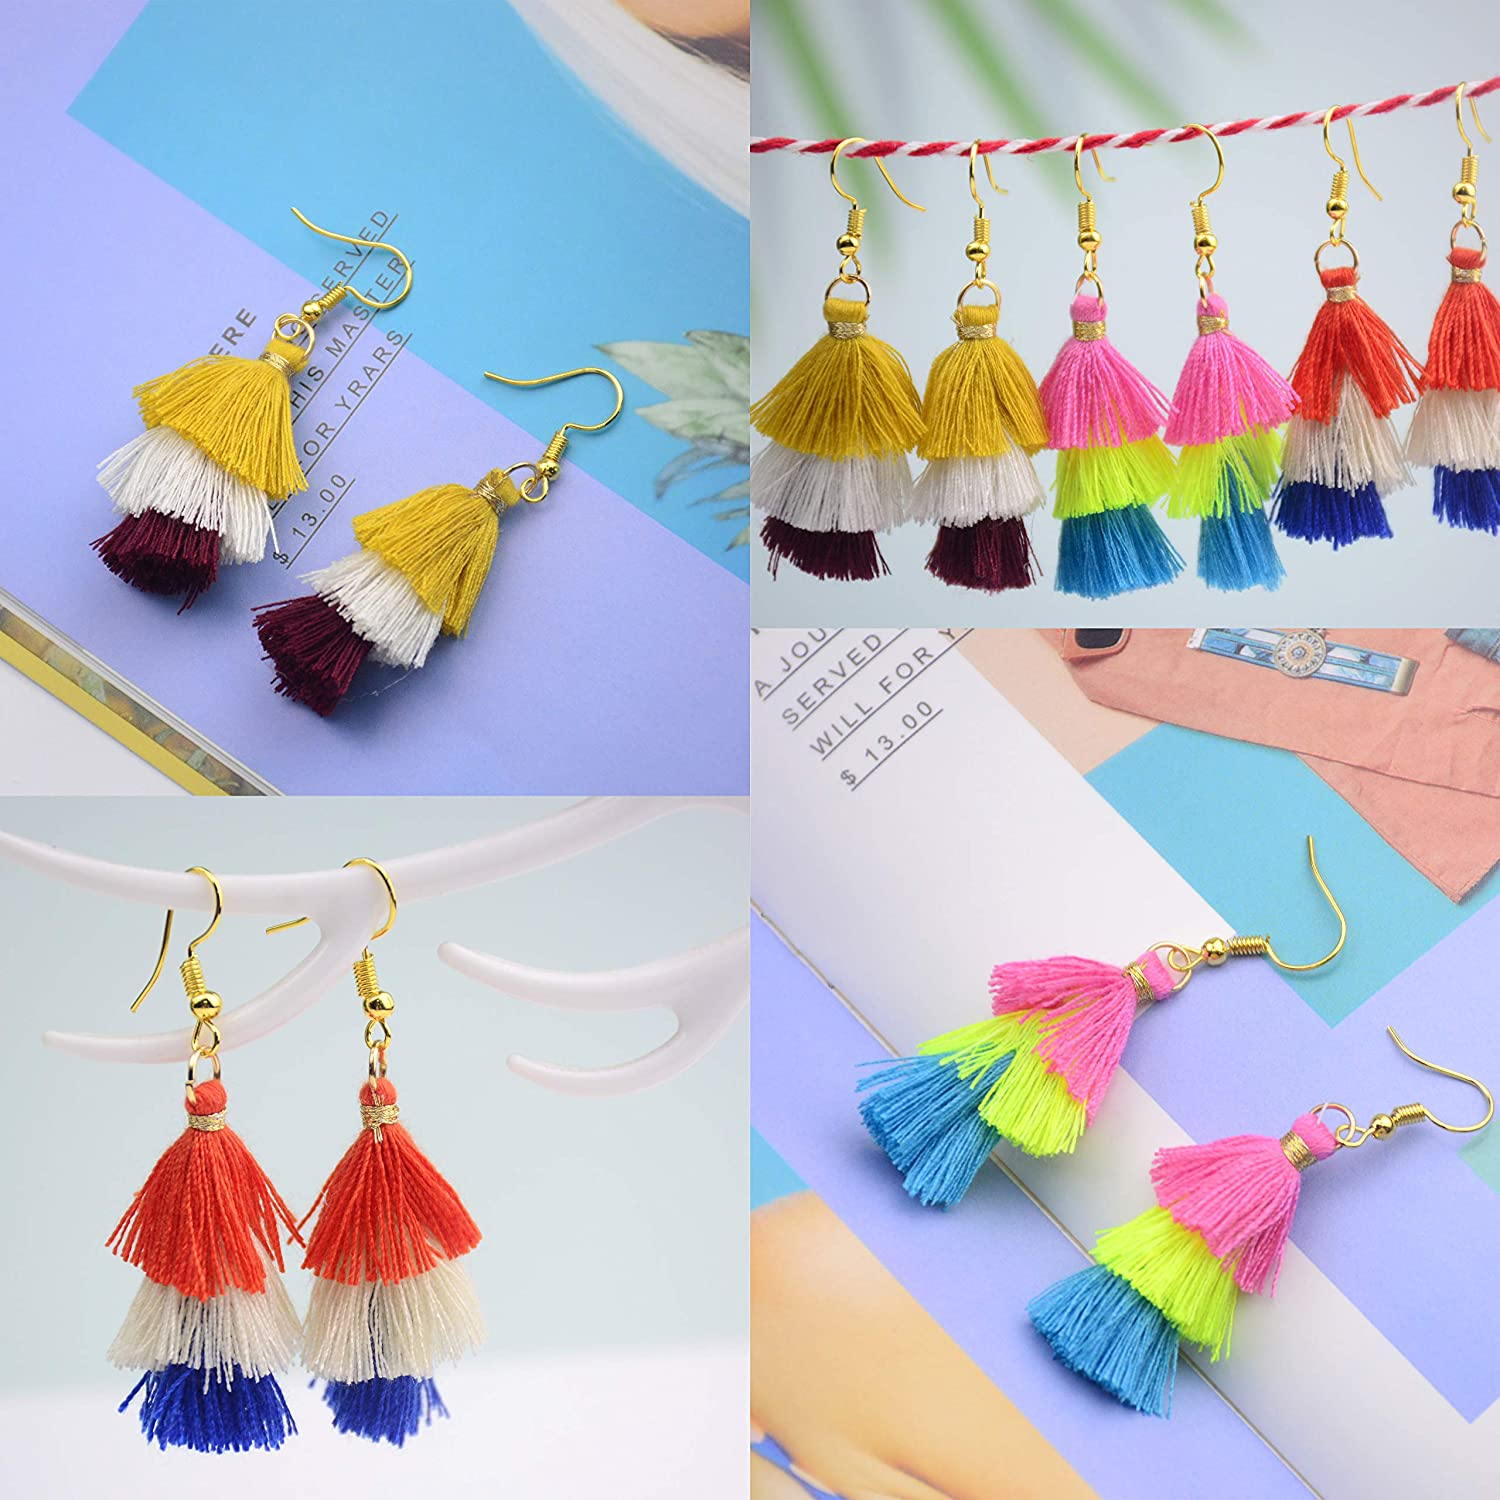 Miexd Aokbean 50pcs 1.57 Inch Colorful Tiny Tri-Layered Keychain Tassels Chunky Cotton Soft Handicrafts Tassel with Gold Jump Ring for Jewelry Making Earring Bag Charms Pendant